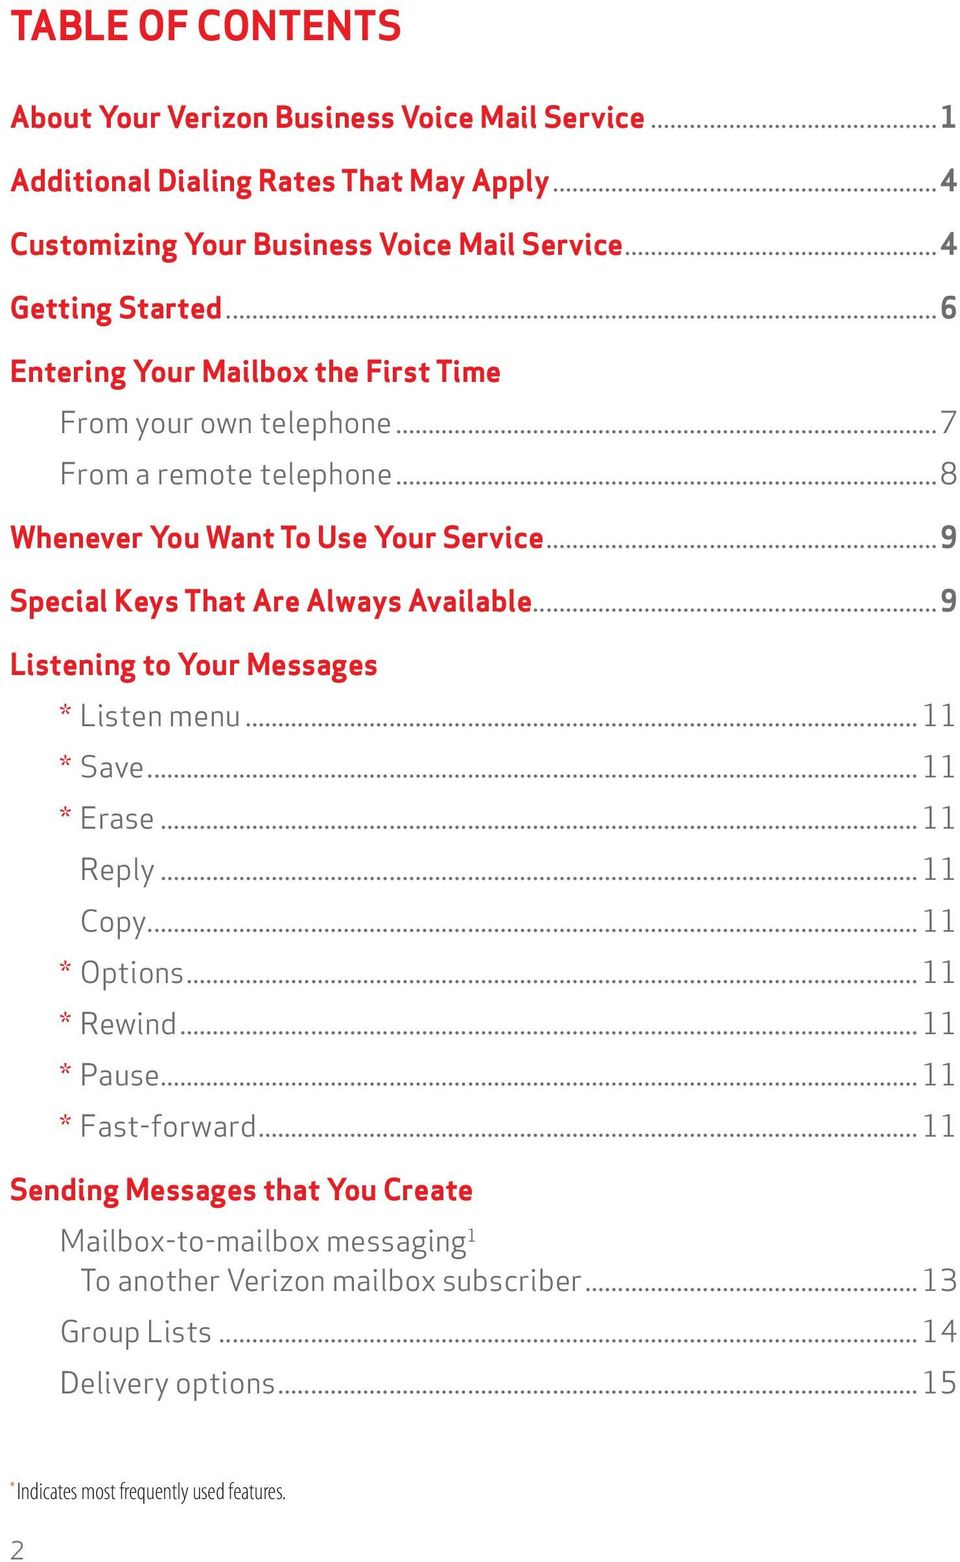 Verizon Voice Mail User Guide Dcdemdnjpava Region Business Pdf